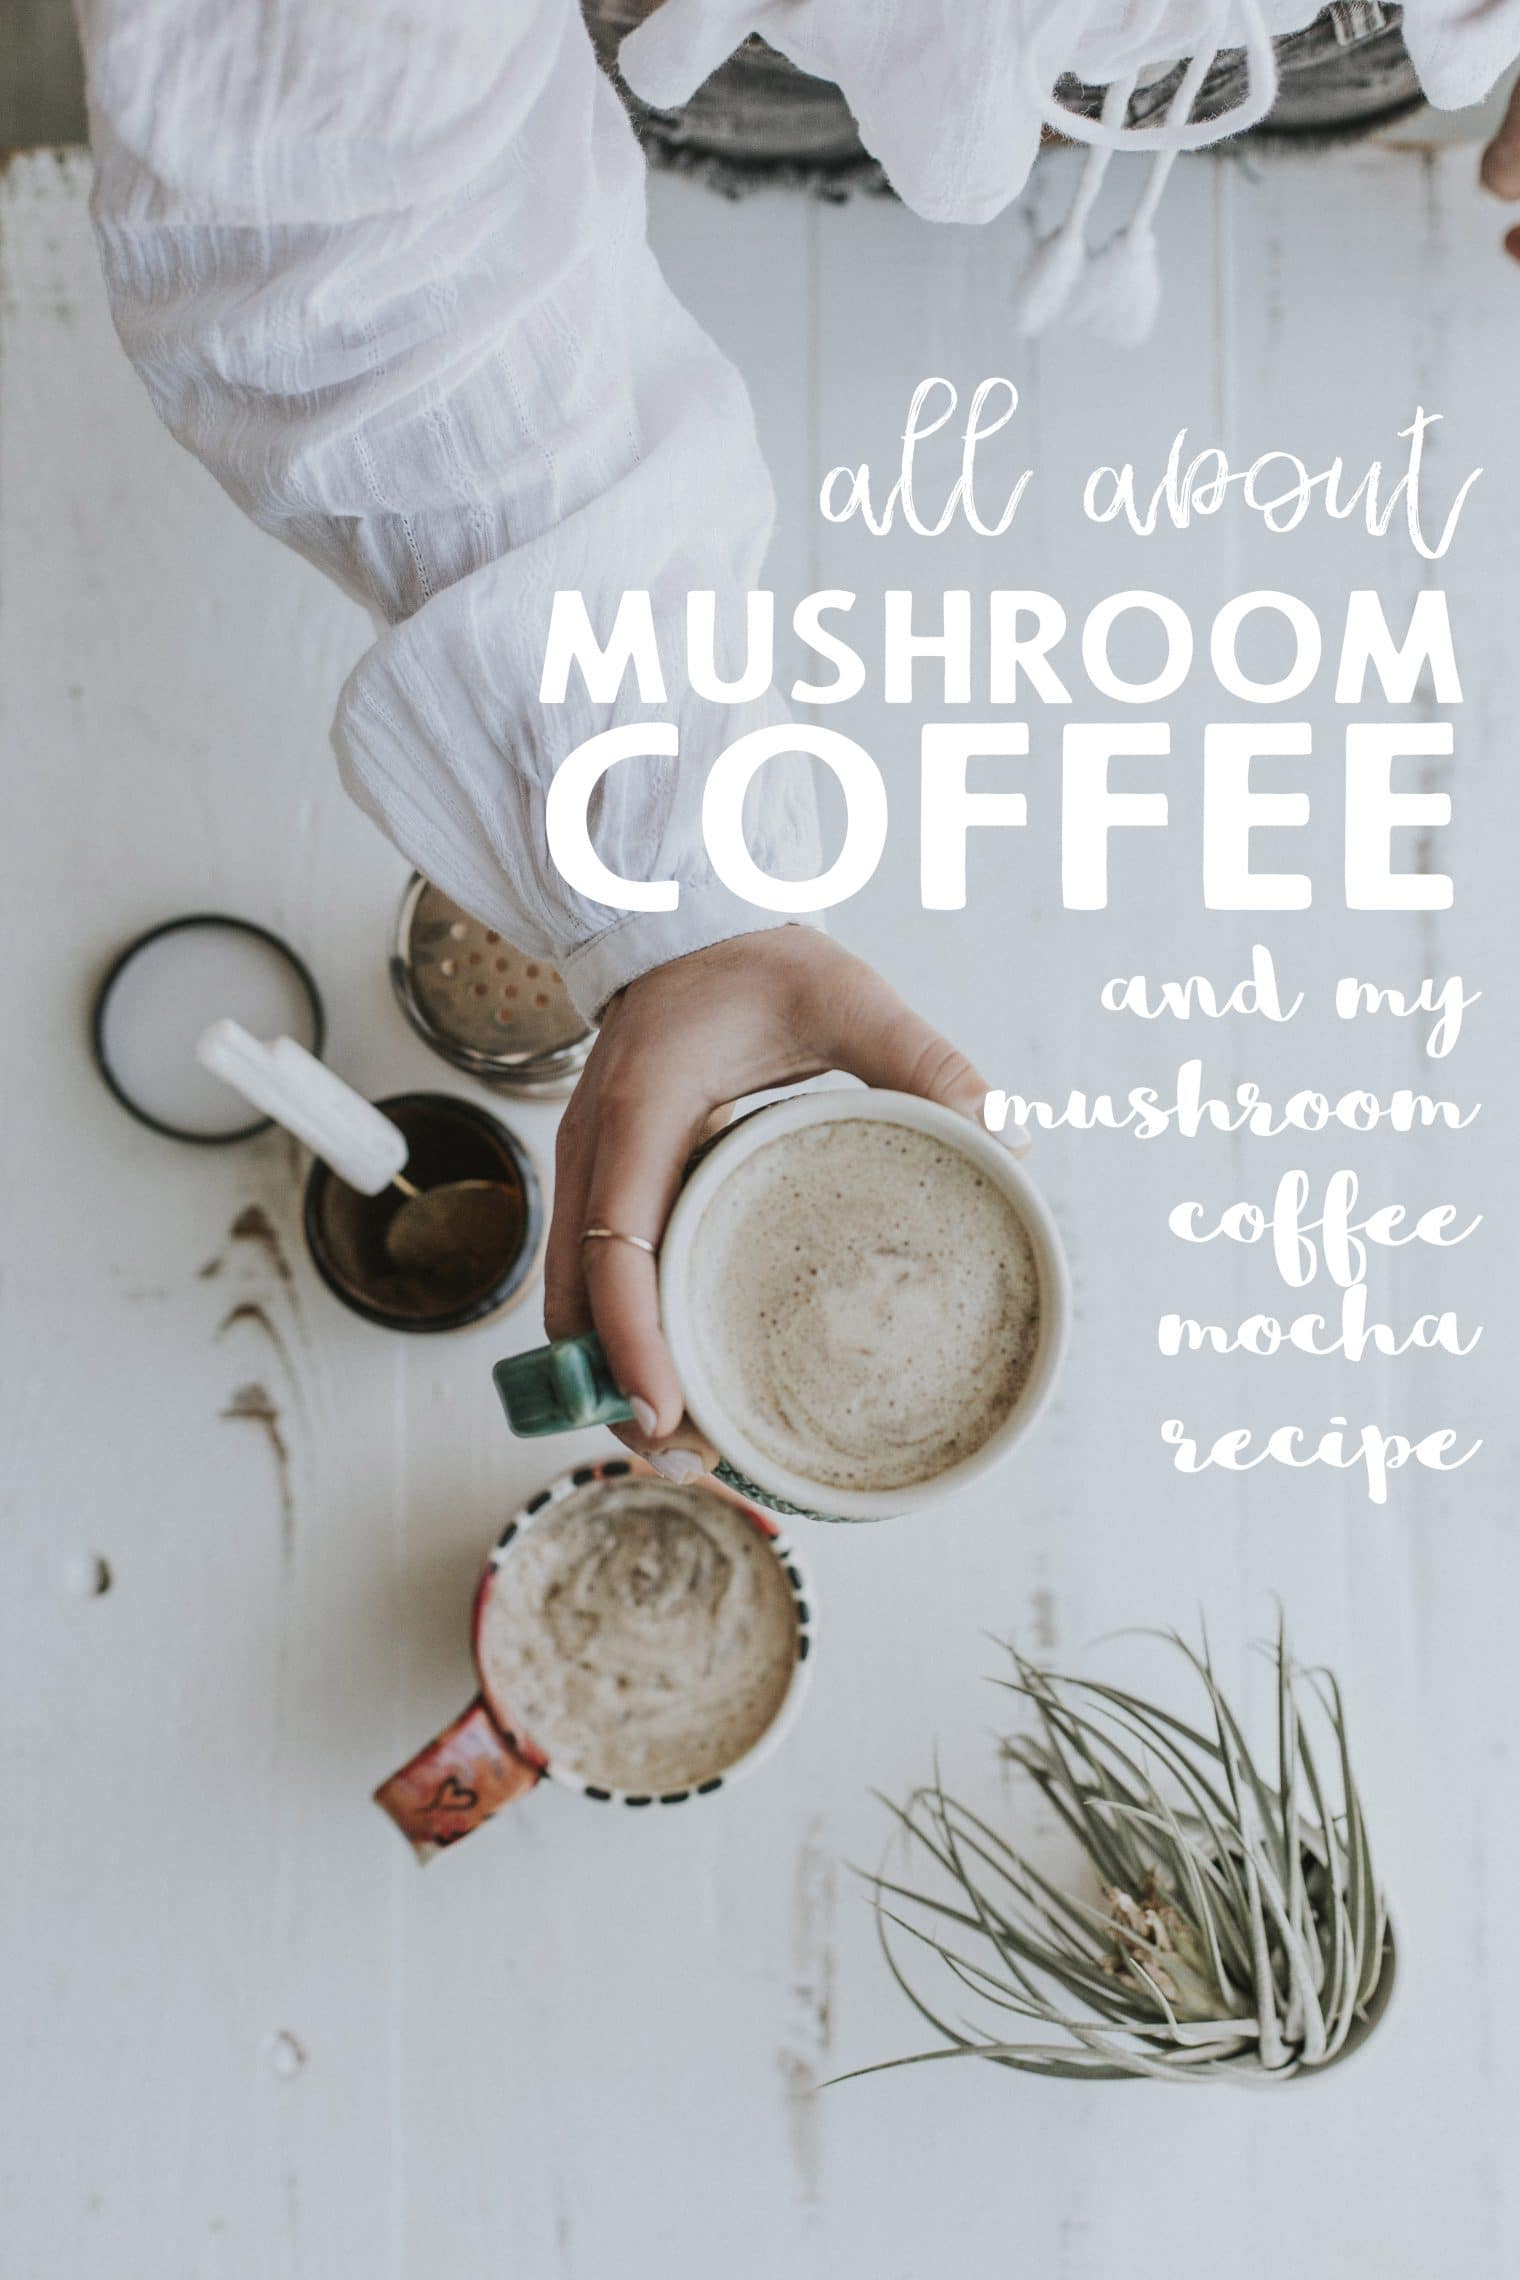 All About Mushroom Coffee + My Mushroom Coffee Mocha Recipe! This post will answer all of your questions about my mushroom coffee drink. It's energizing, filling, andso delicious.